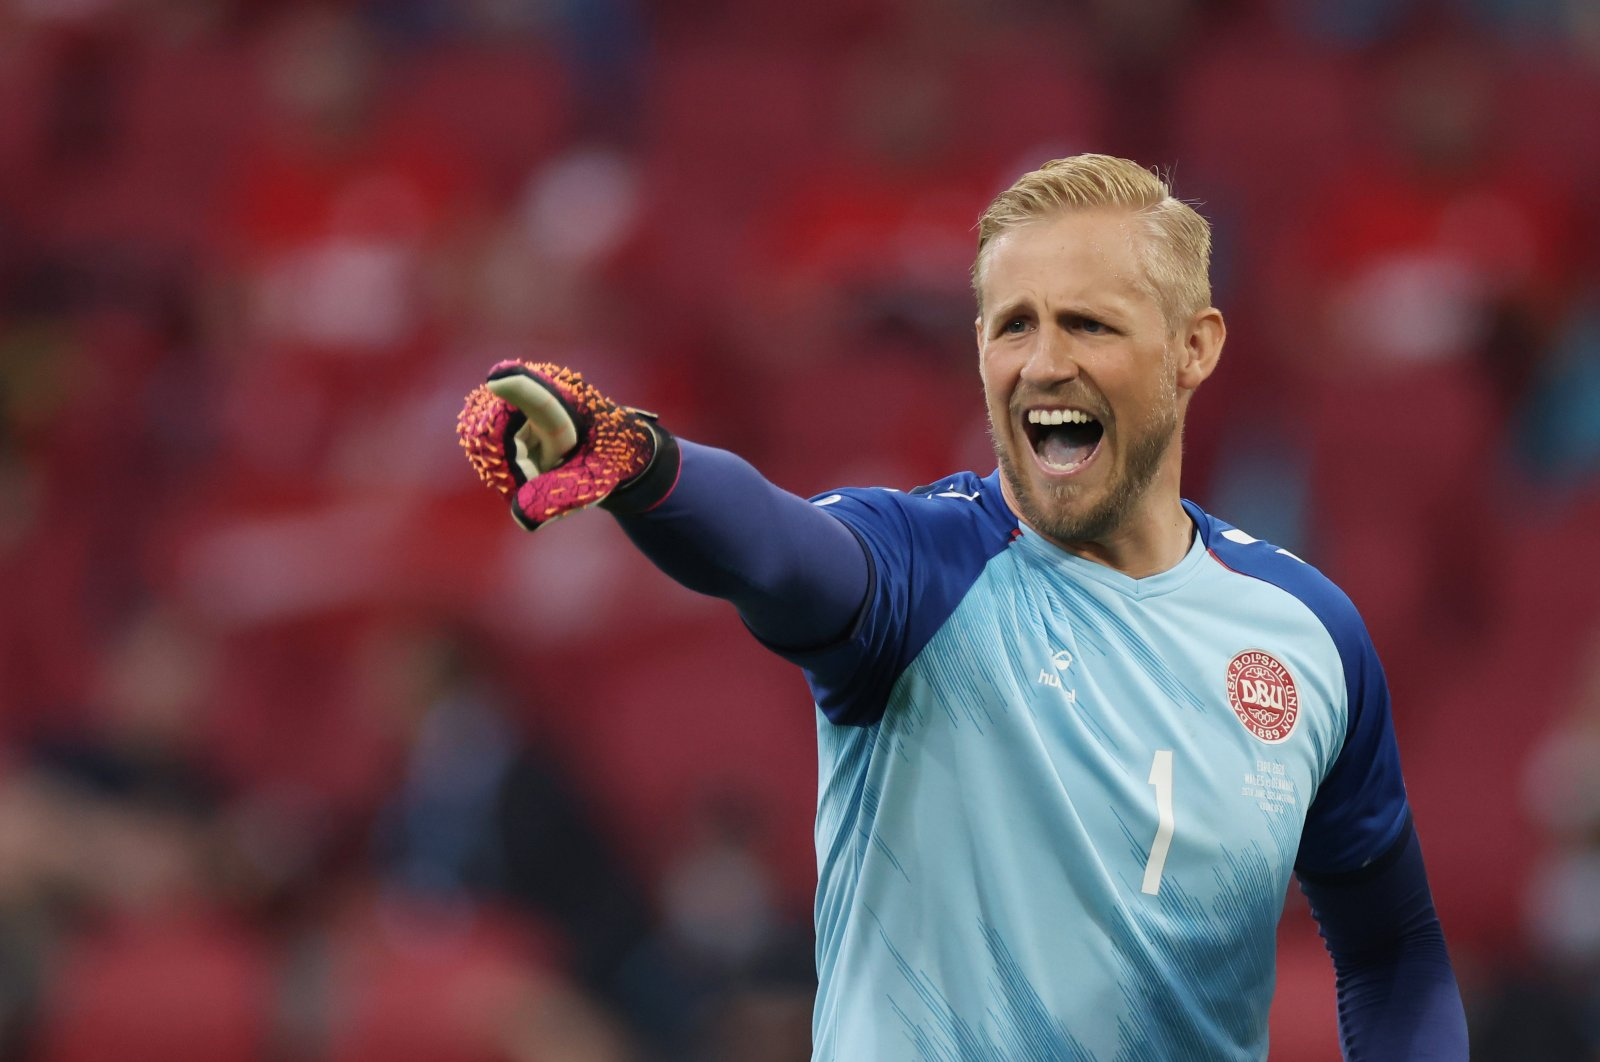 Denmark goalkeeper Kasper Schmeichel reacts during their Euro 2020 Round of 16 match against Wales at Johan Cruijff Arena, Amsterdam, the Netherlands, June 26, 2021. (Reuters Photo)